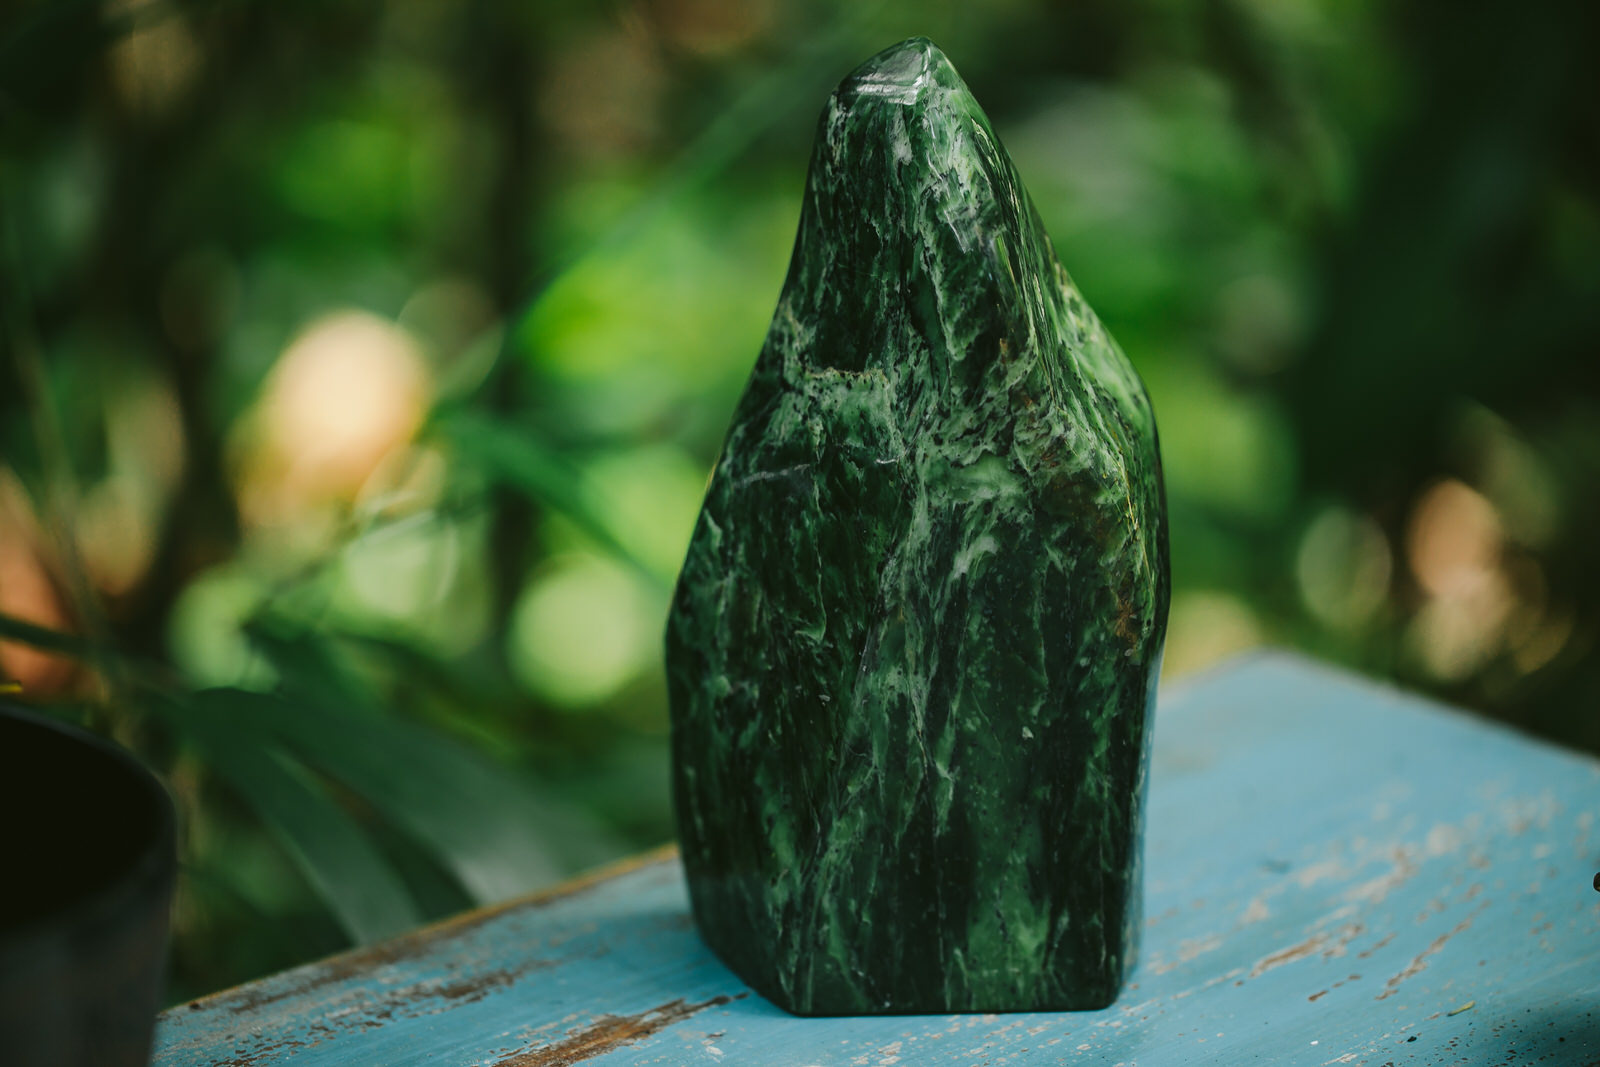 Green Jade stone from Crystal Vision LTC in Hollywood!